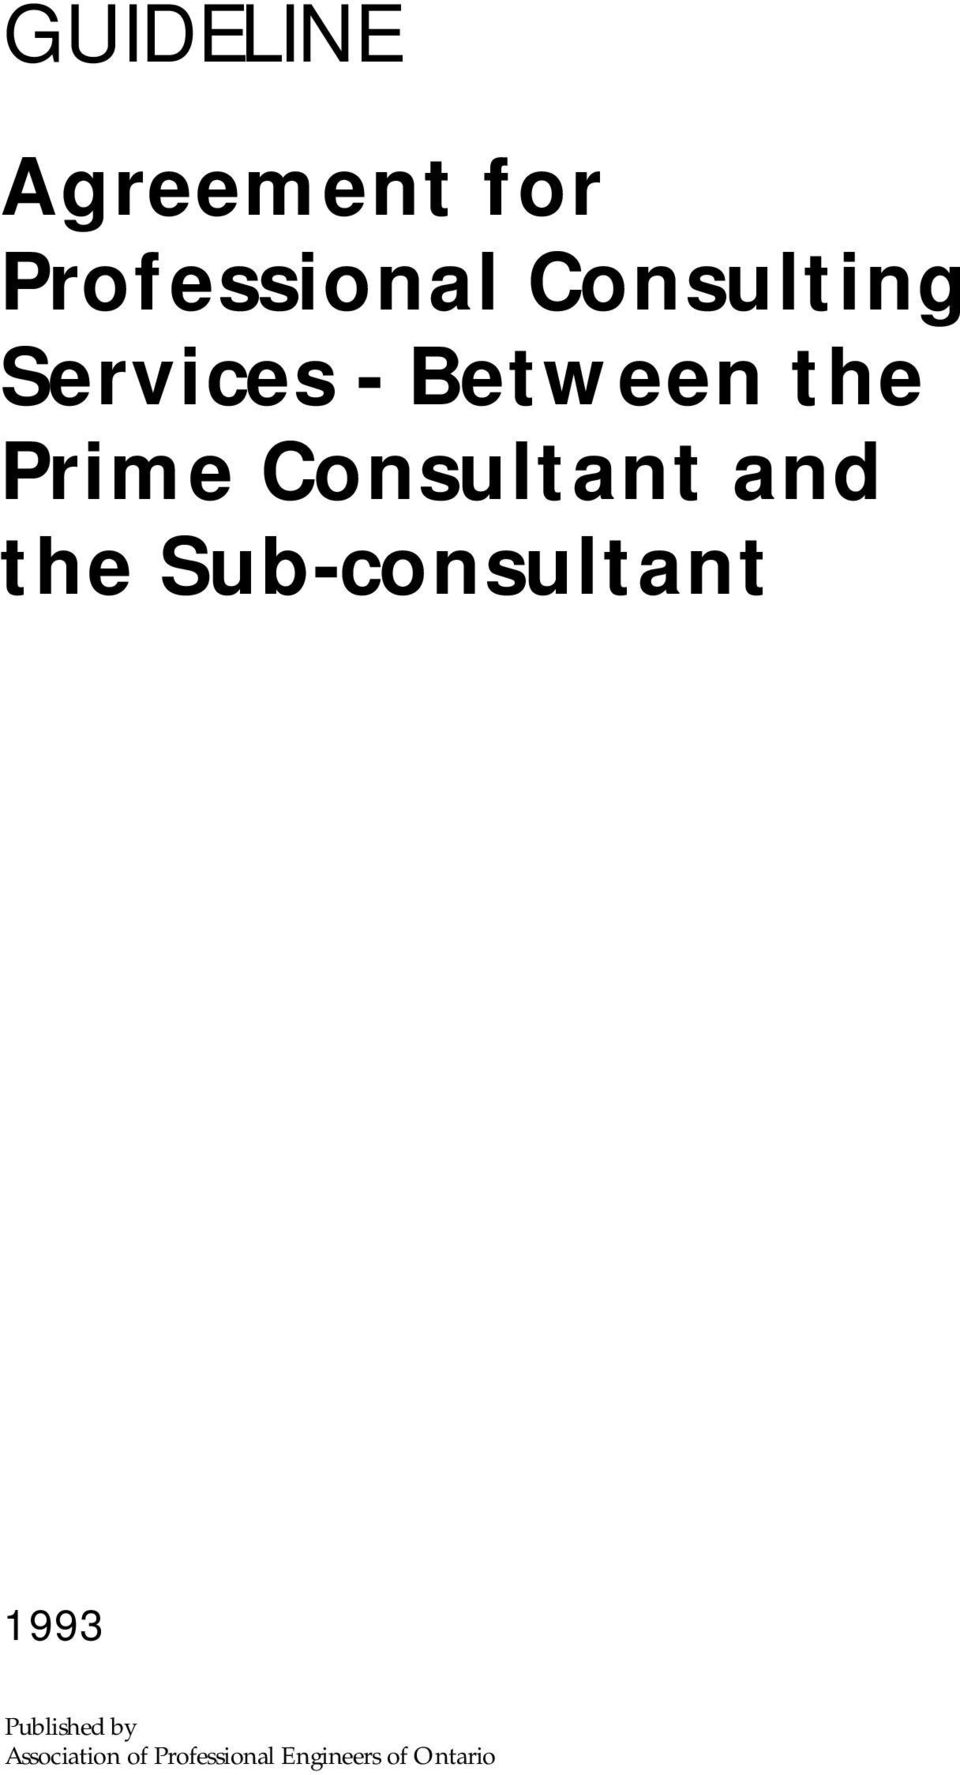 Agreement For Professional Consulting Services Between